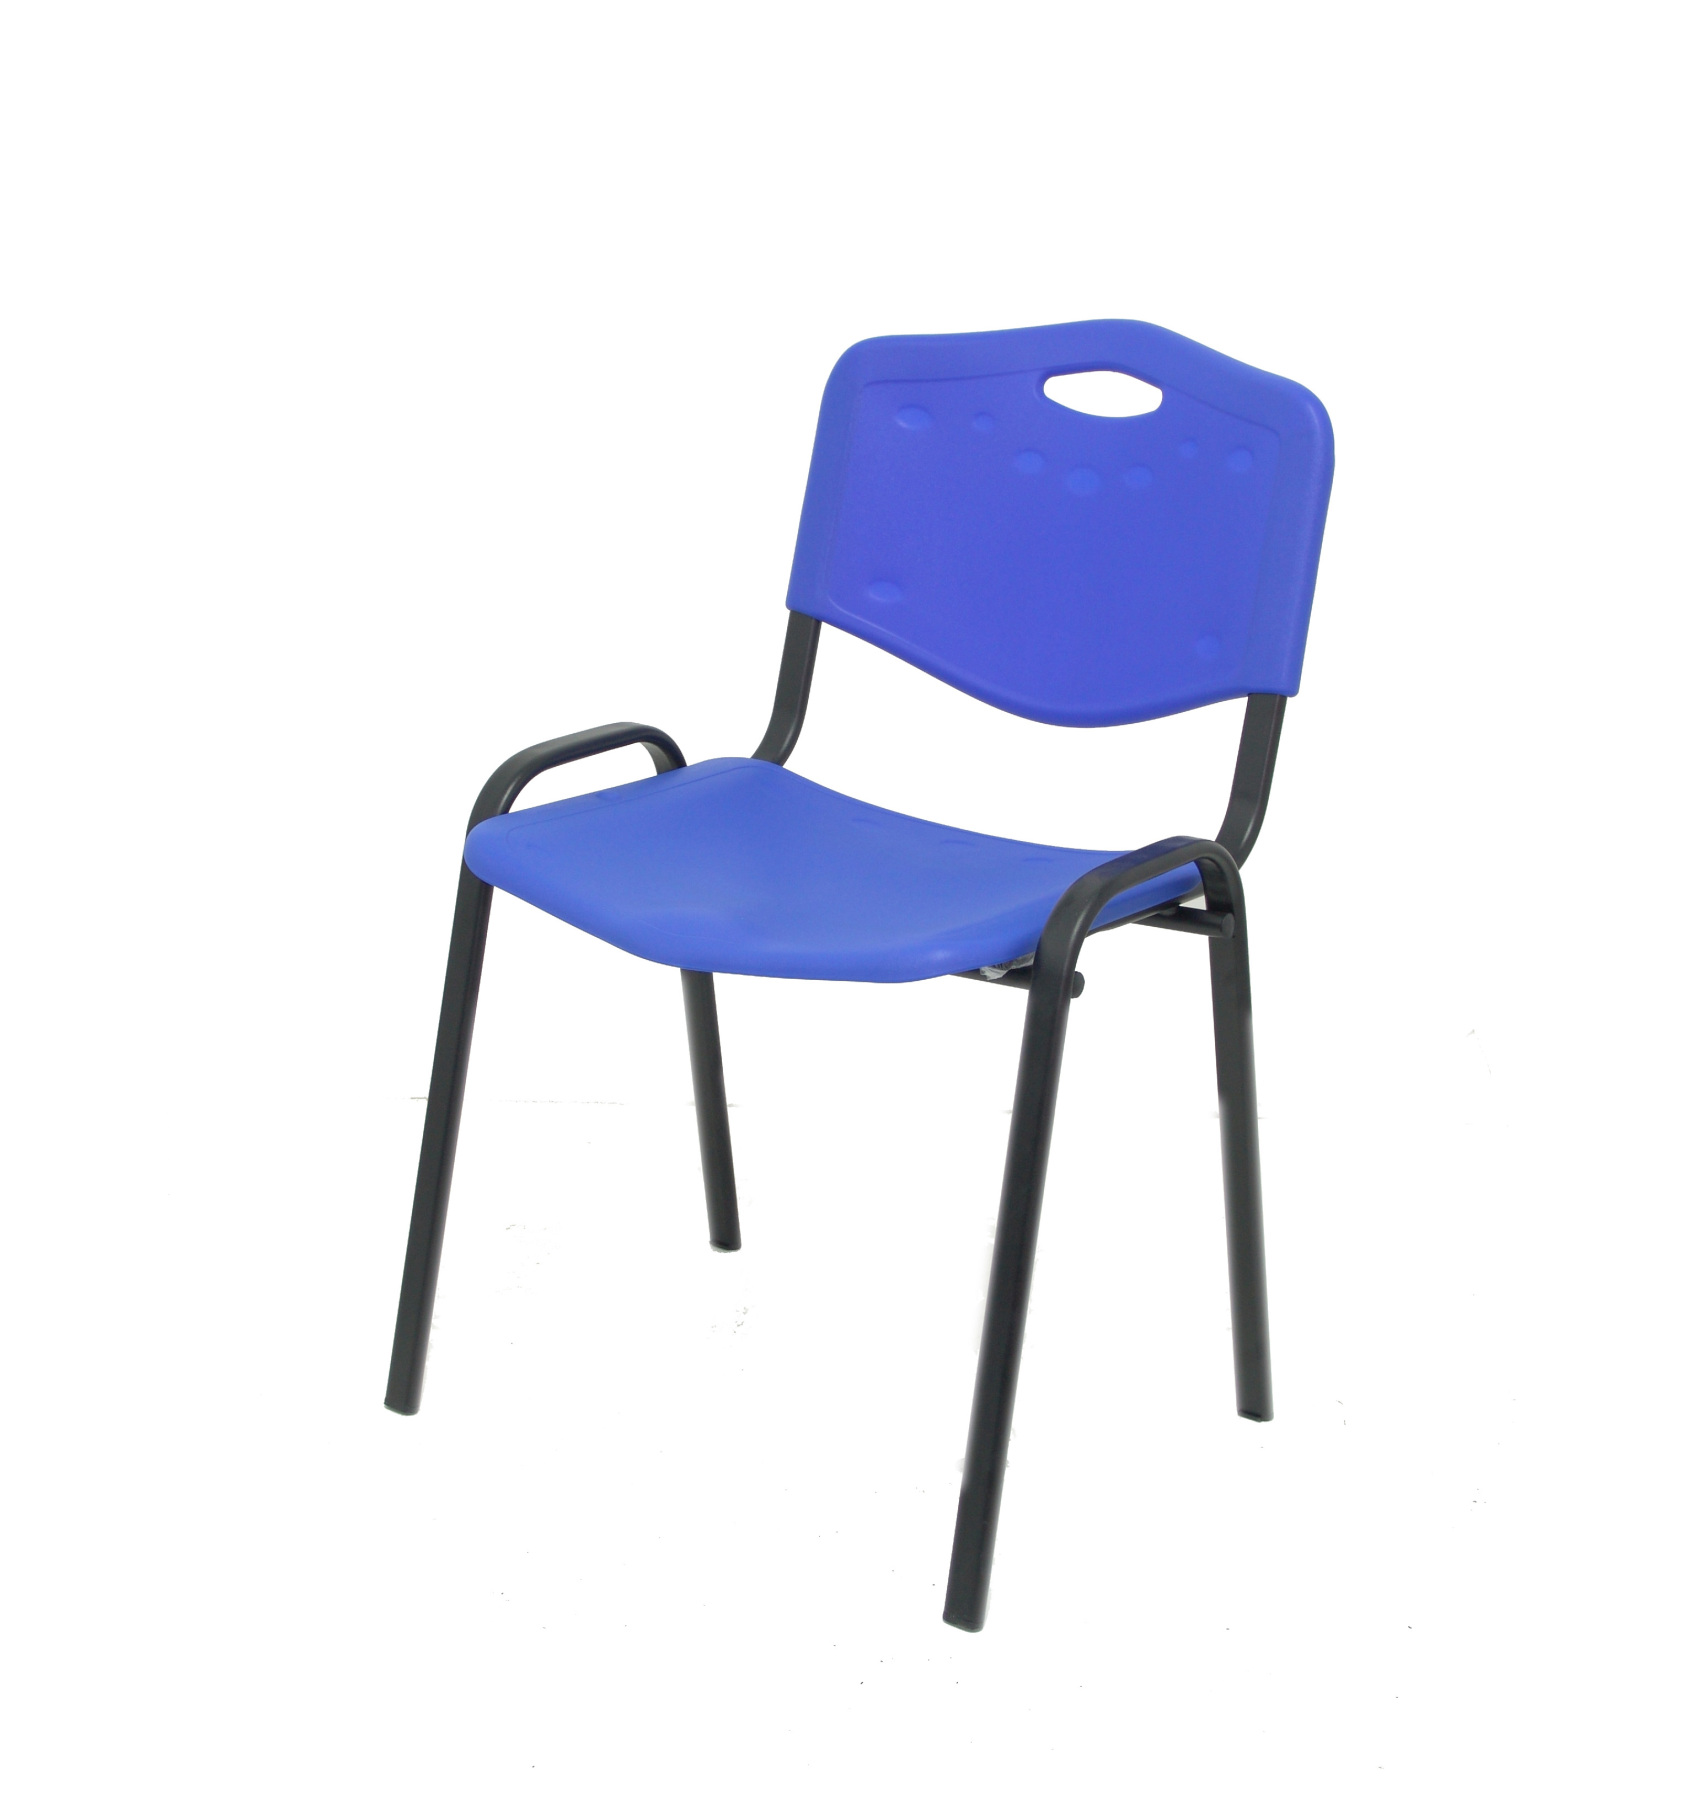 Visitor Chair Desk Ergonomic, Stackable, Multipurpose And Structure In Black Color Up Seat And Backstop PVC Color Blue (WITH